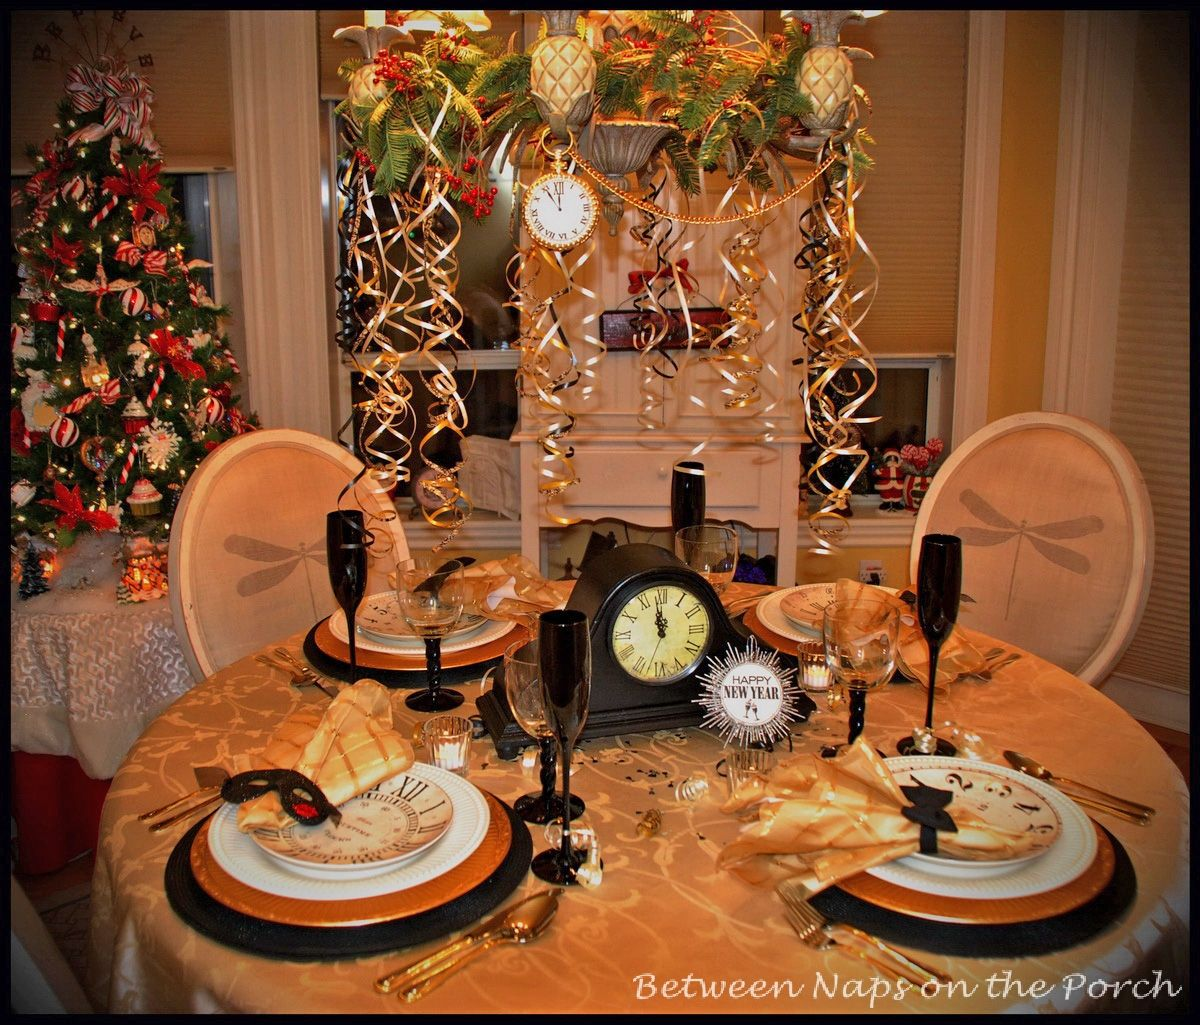 Decoration ideas for 50th wedding anniversary celebration  Between Naps on the Porch New Years Resources Dinner plates